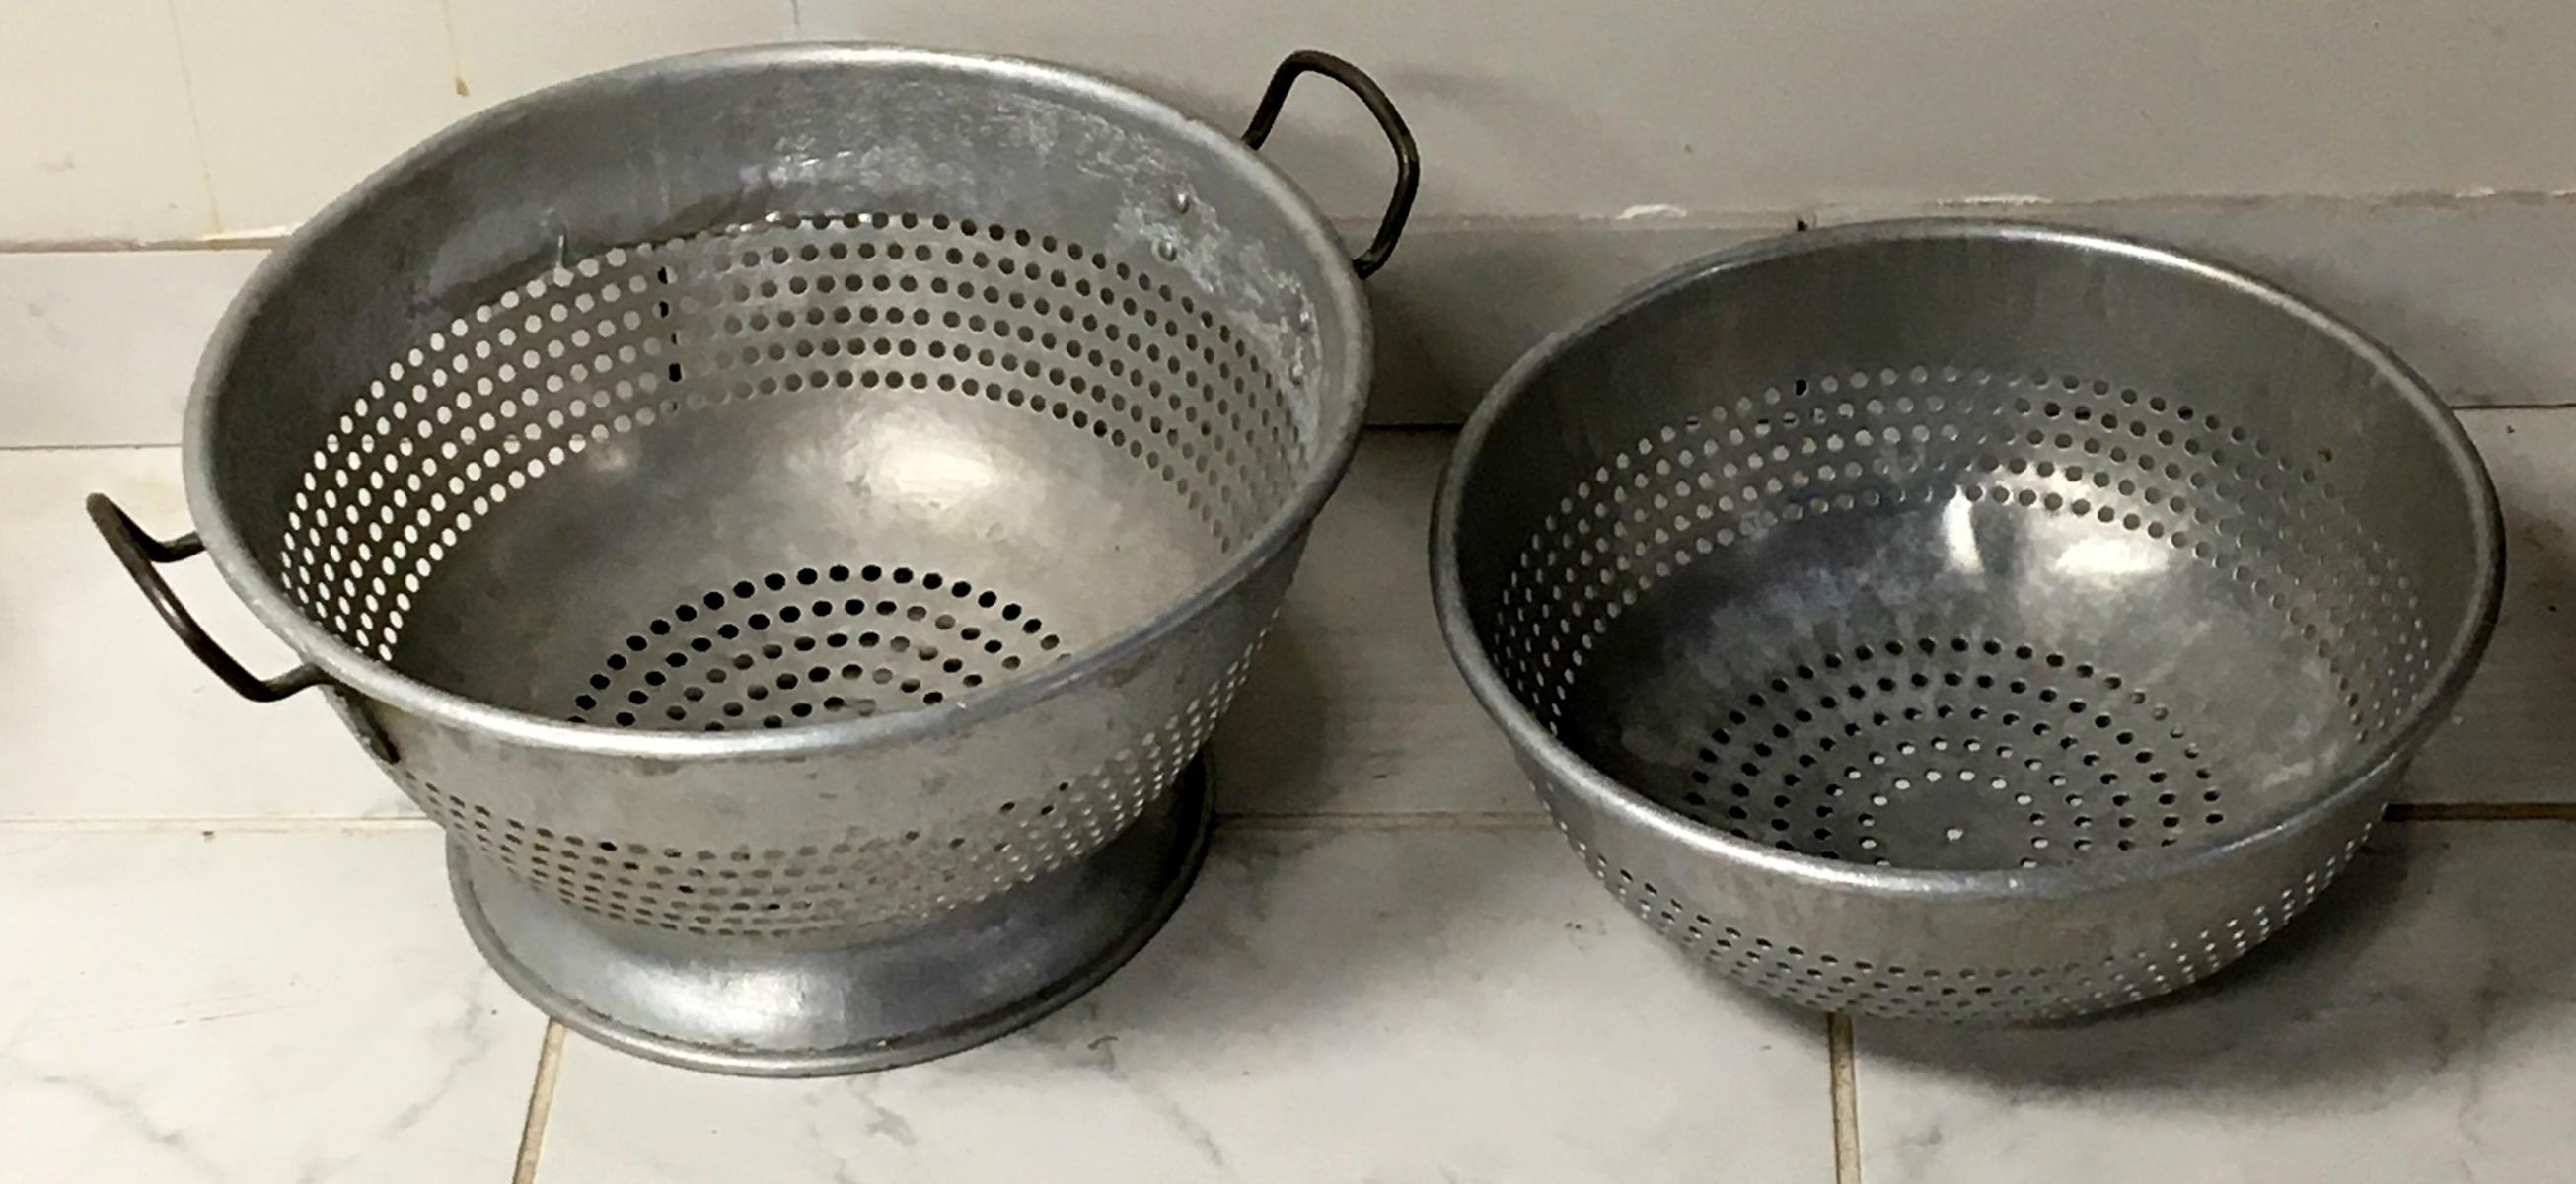 Lot of 2 Commercial Colanders